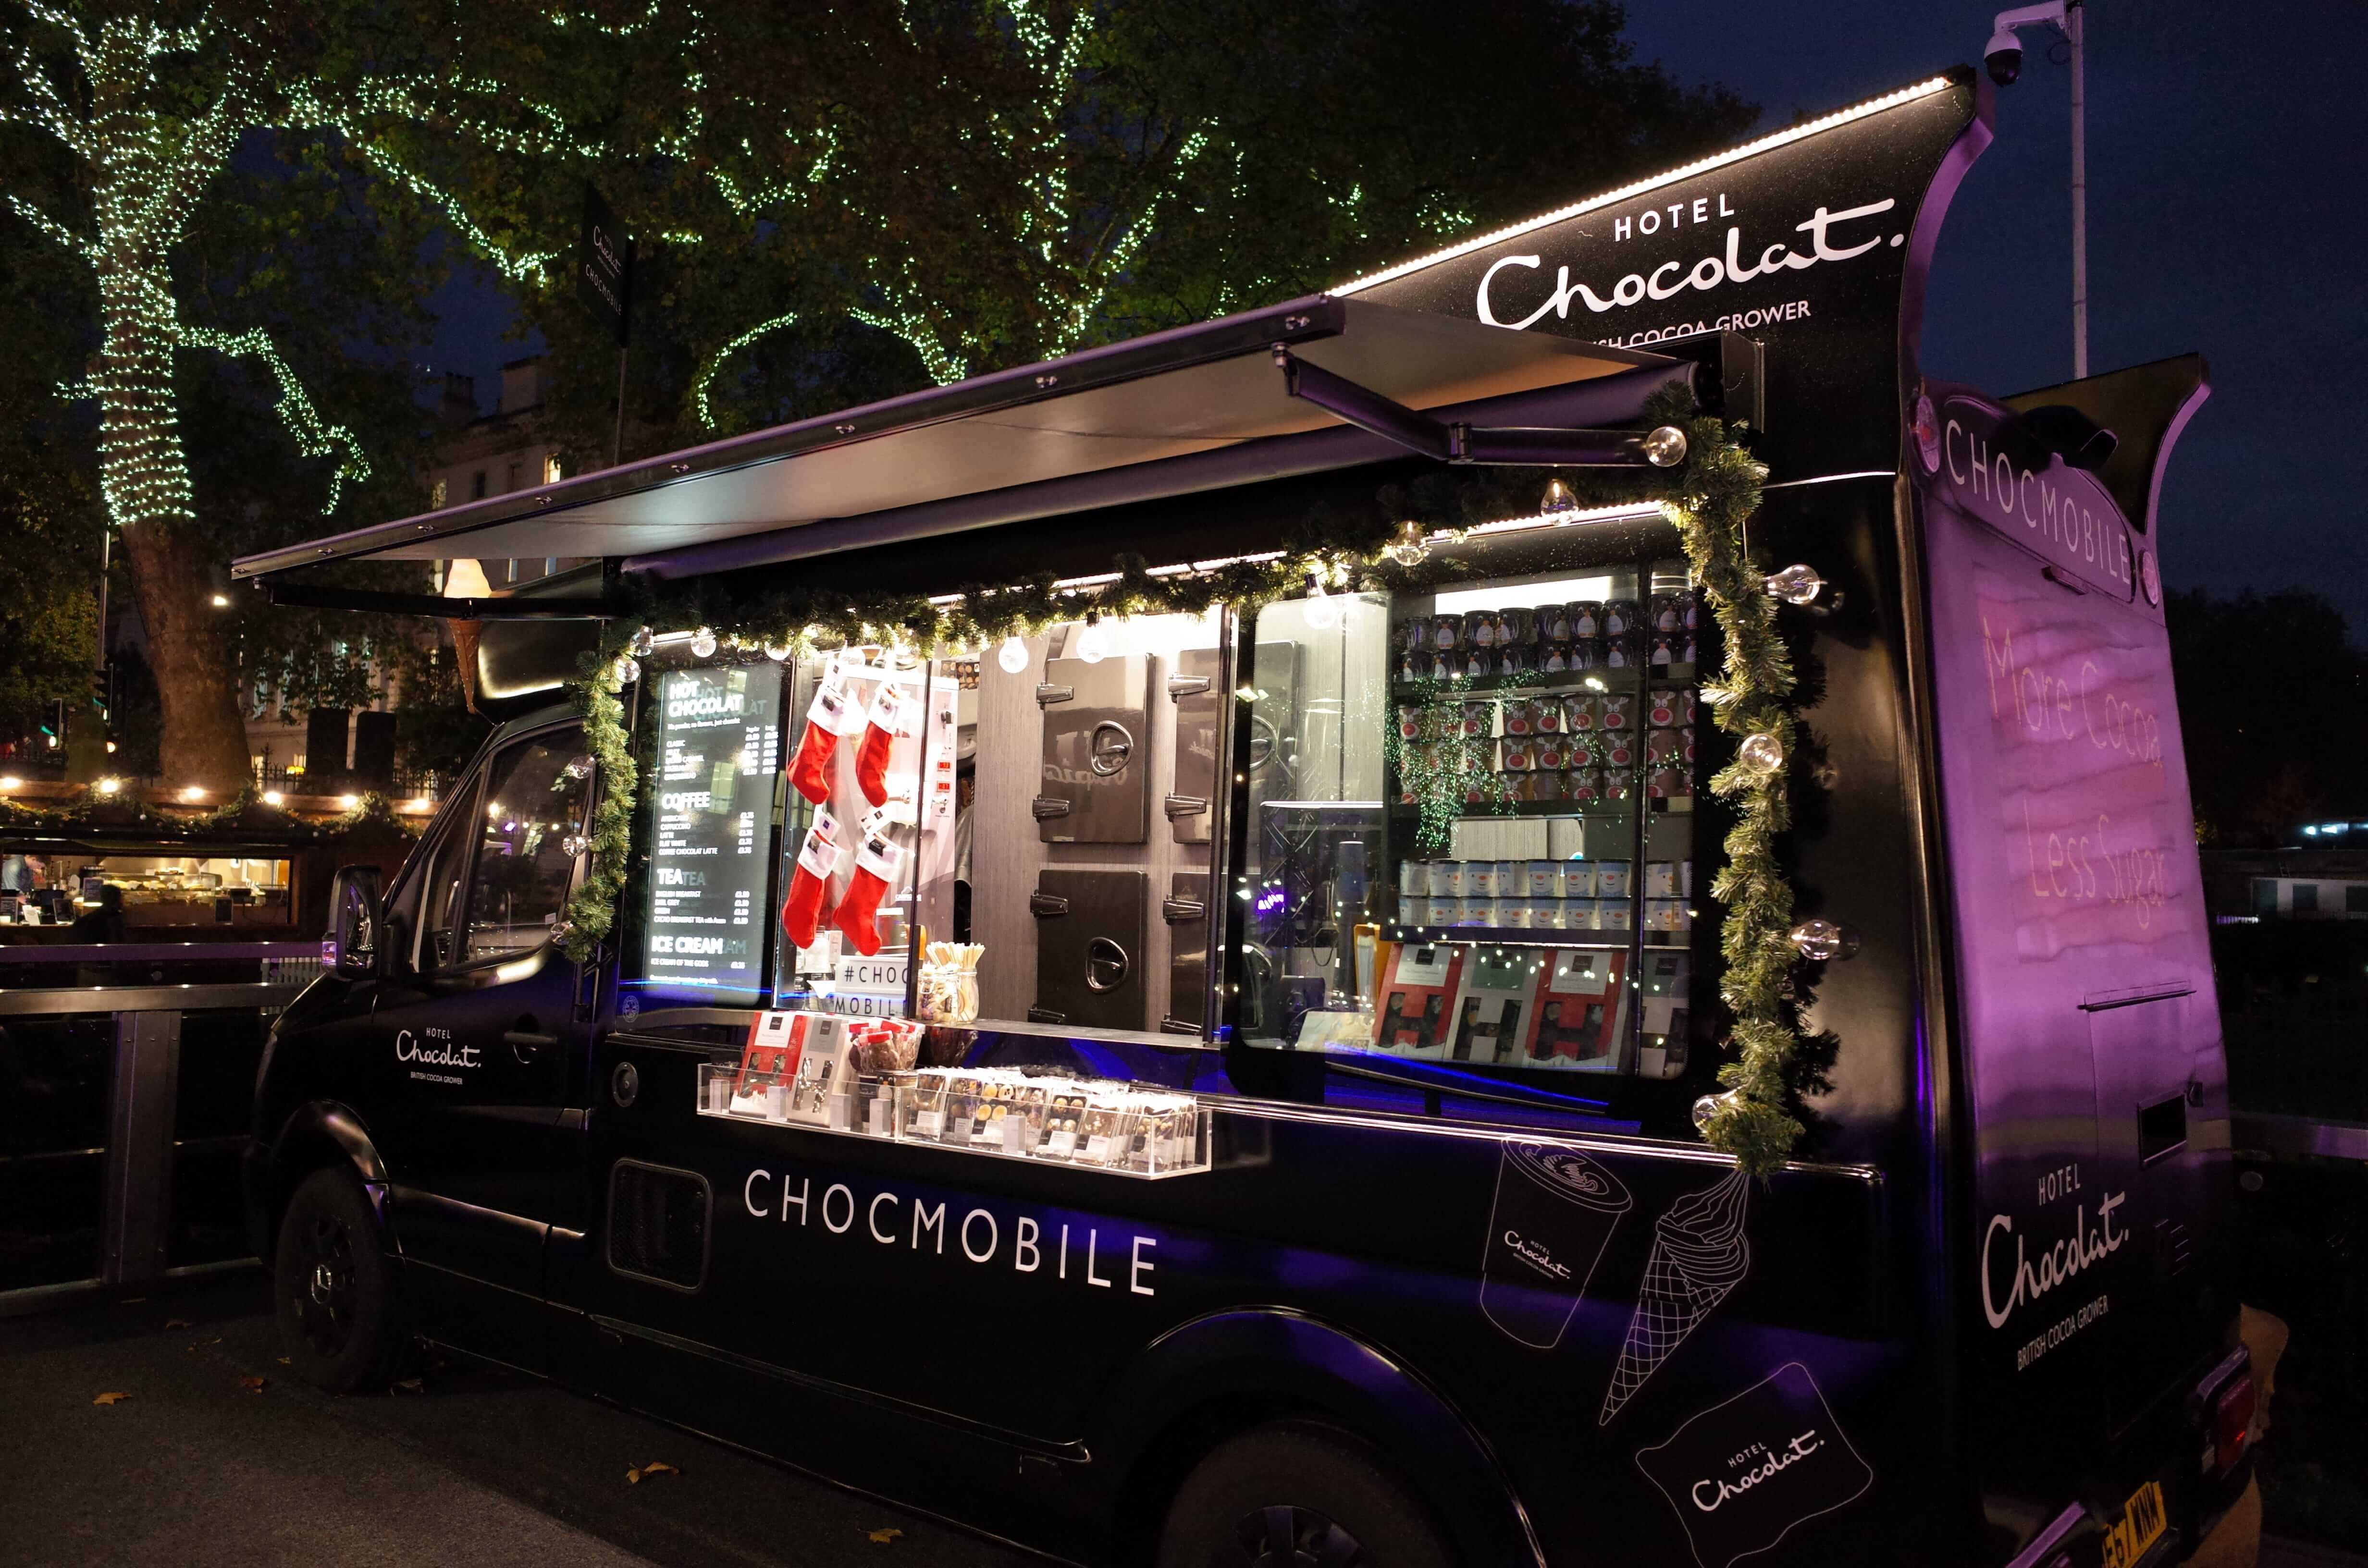 Chocmobile Replace